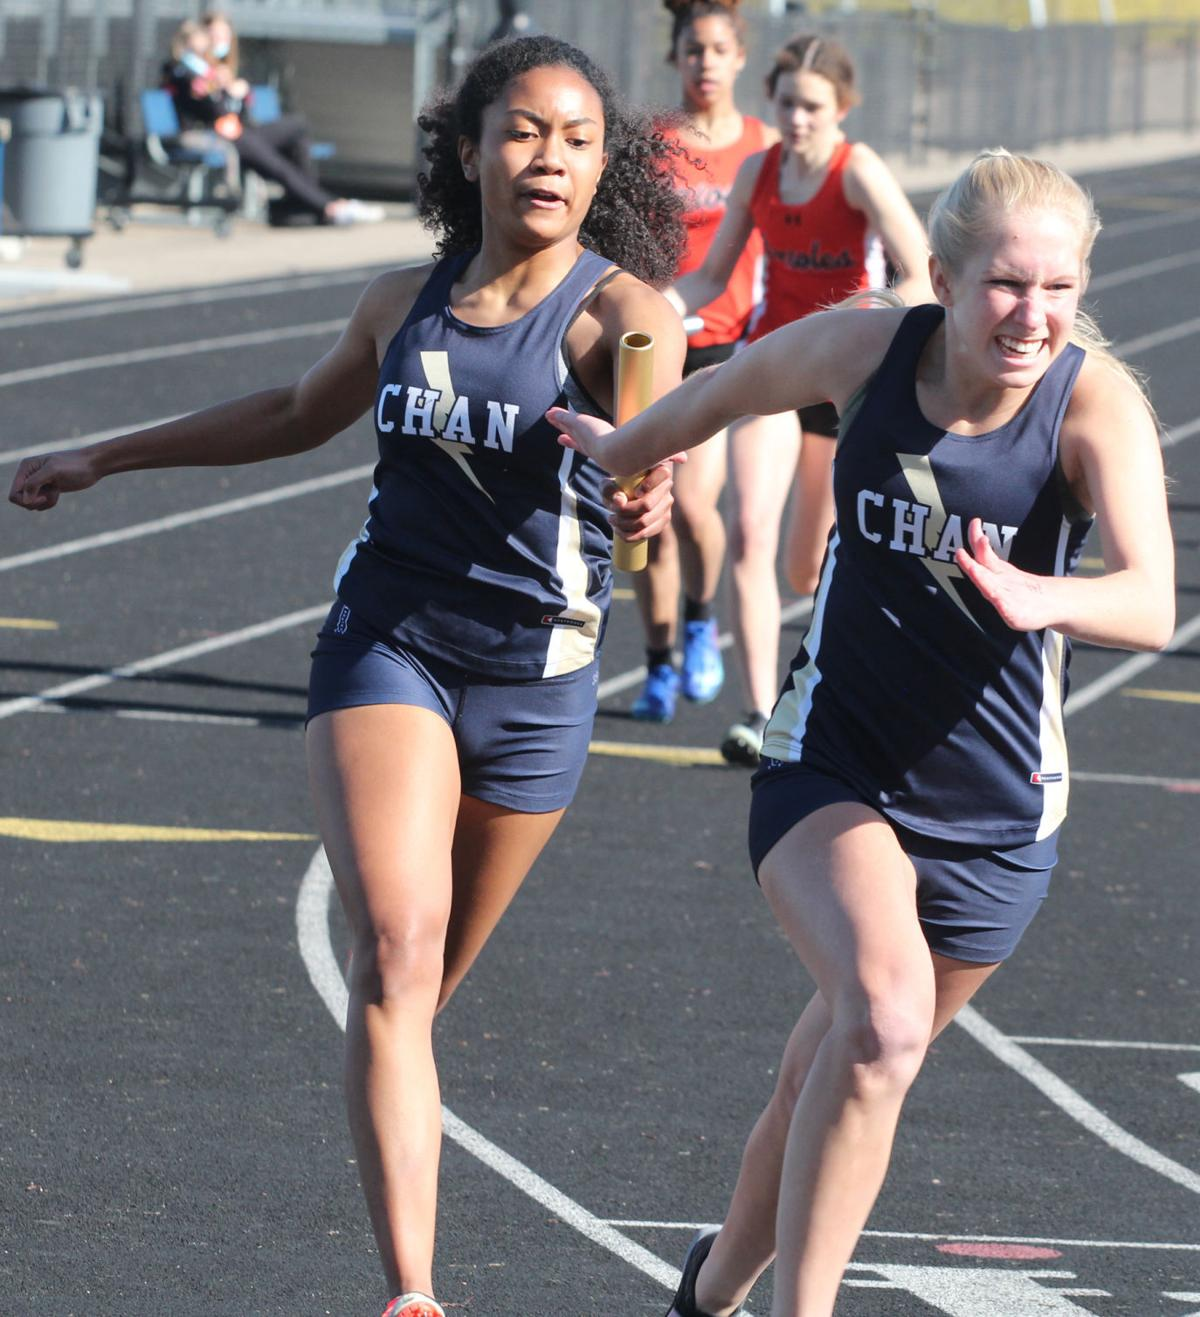 Chan Track - 4x100 Relay